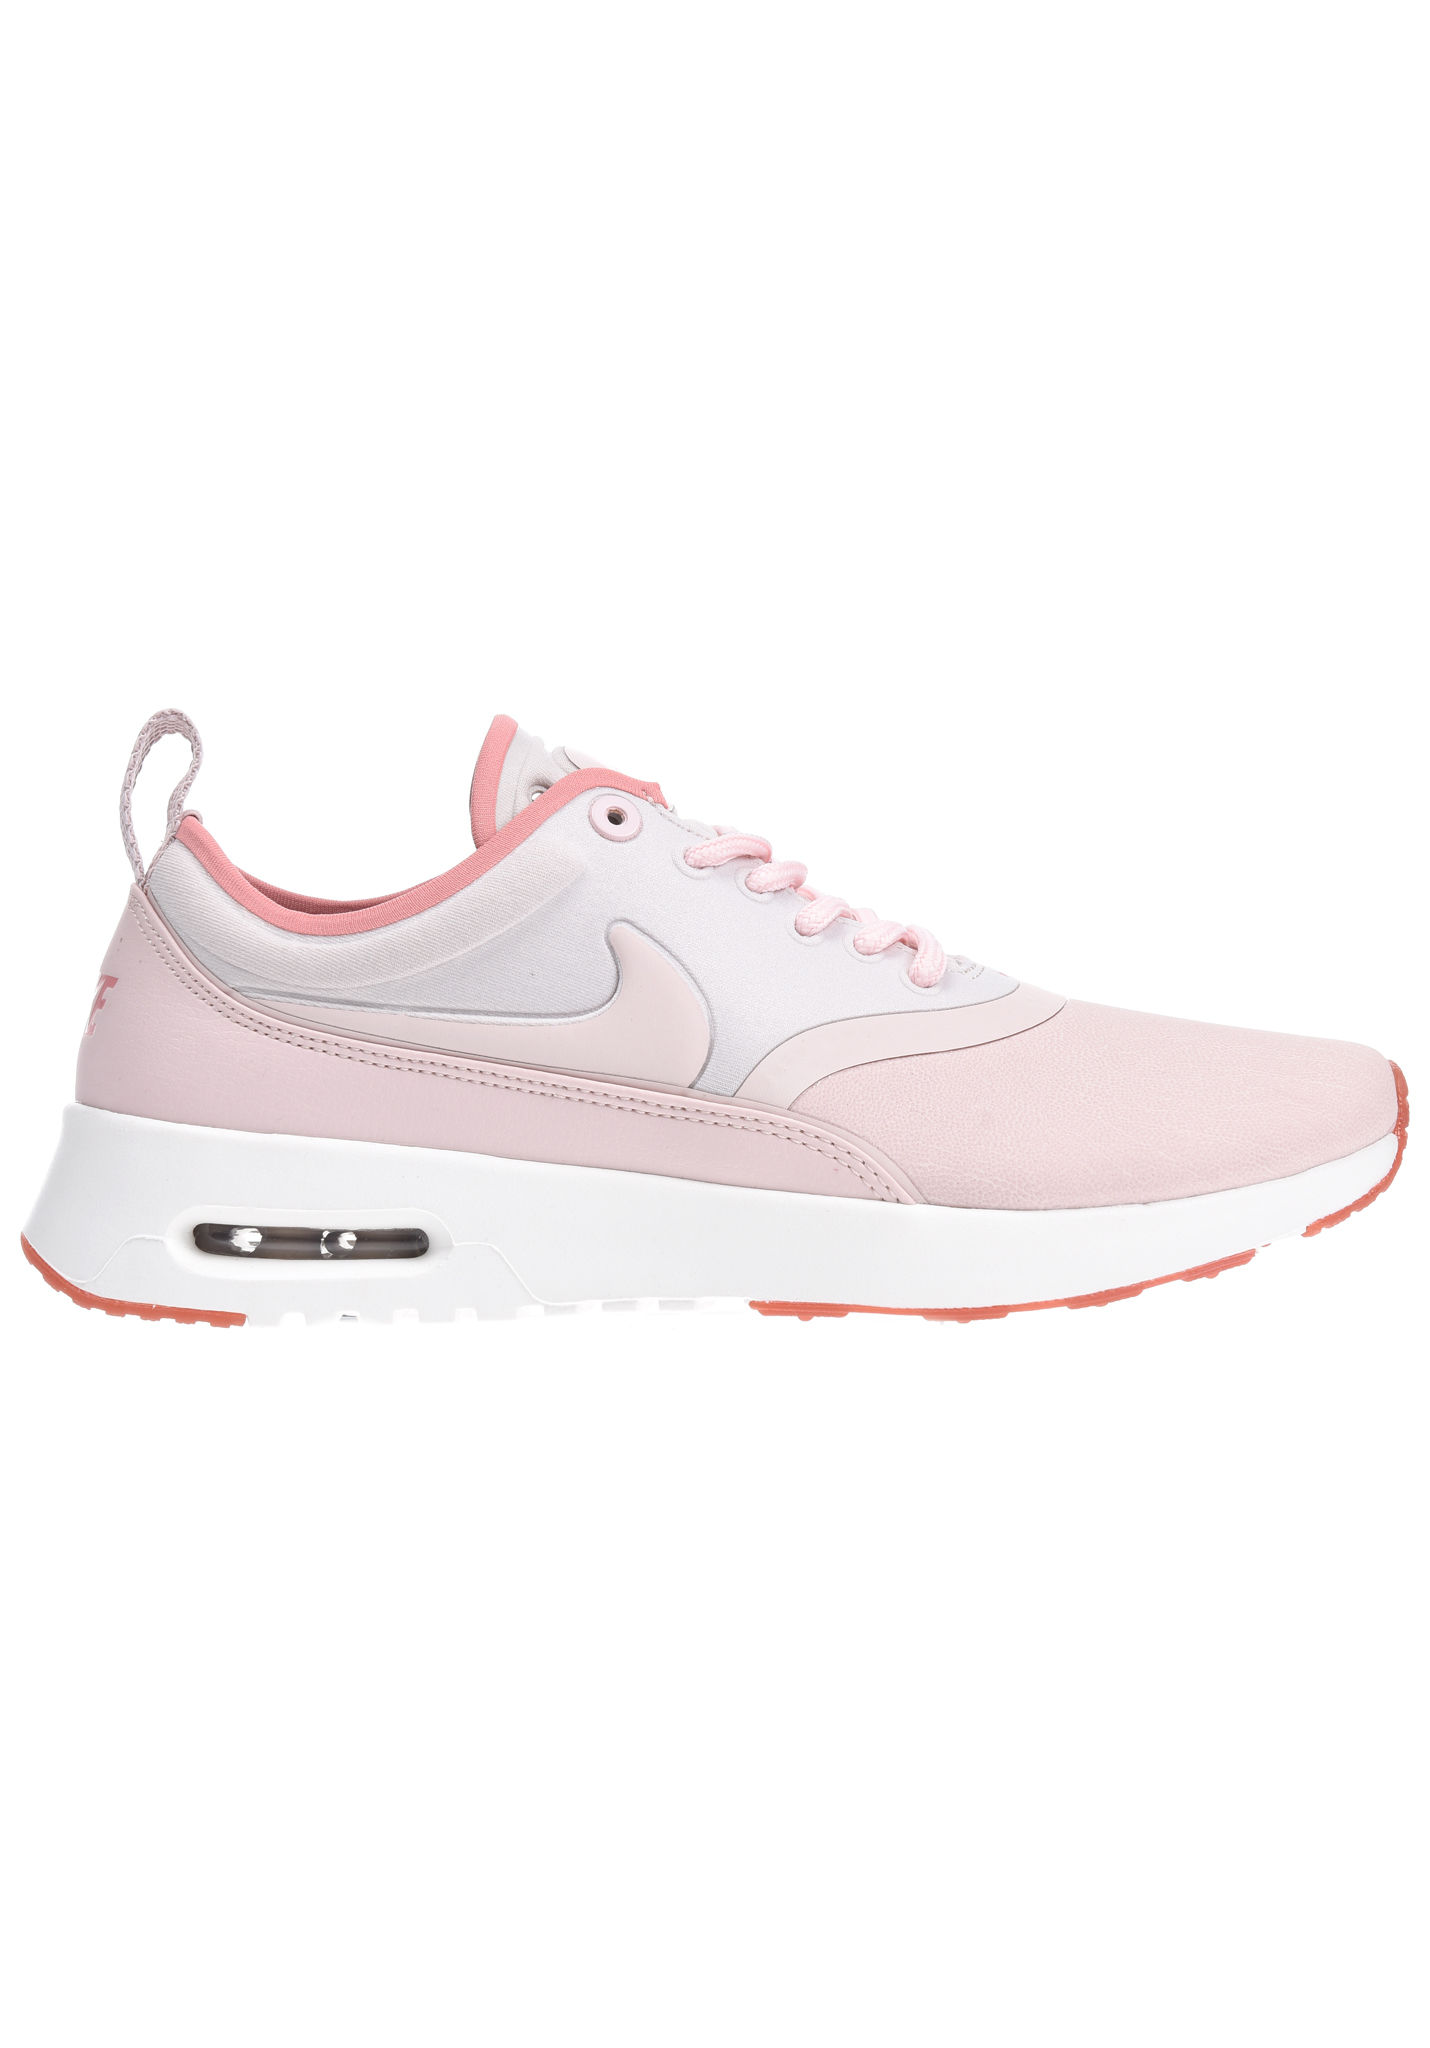 size 40 123a7 93ee1 NIKE SPORTSWEAR Air Max Thea Ultra Premium - Zapatillas para Mujeres - Rosa  - Planet Sports